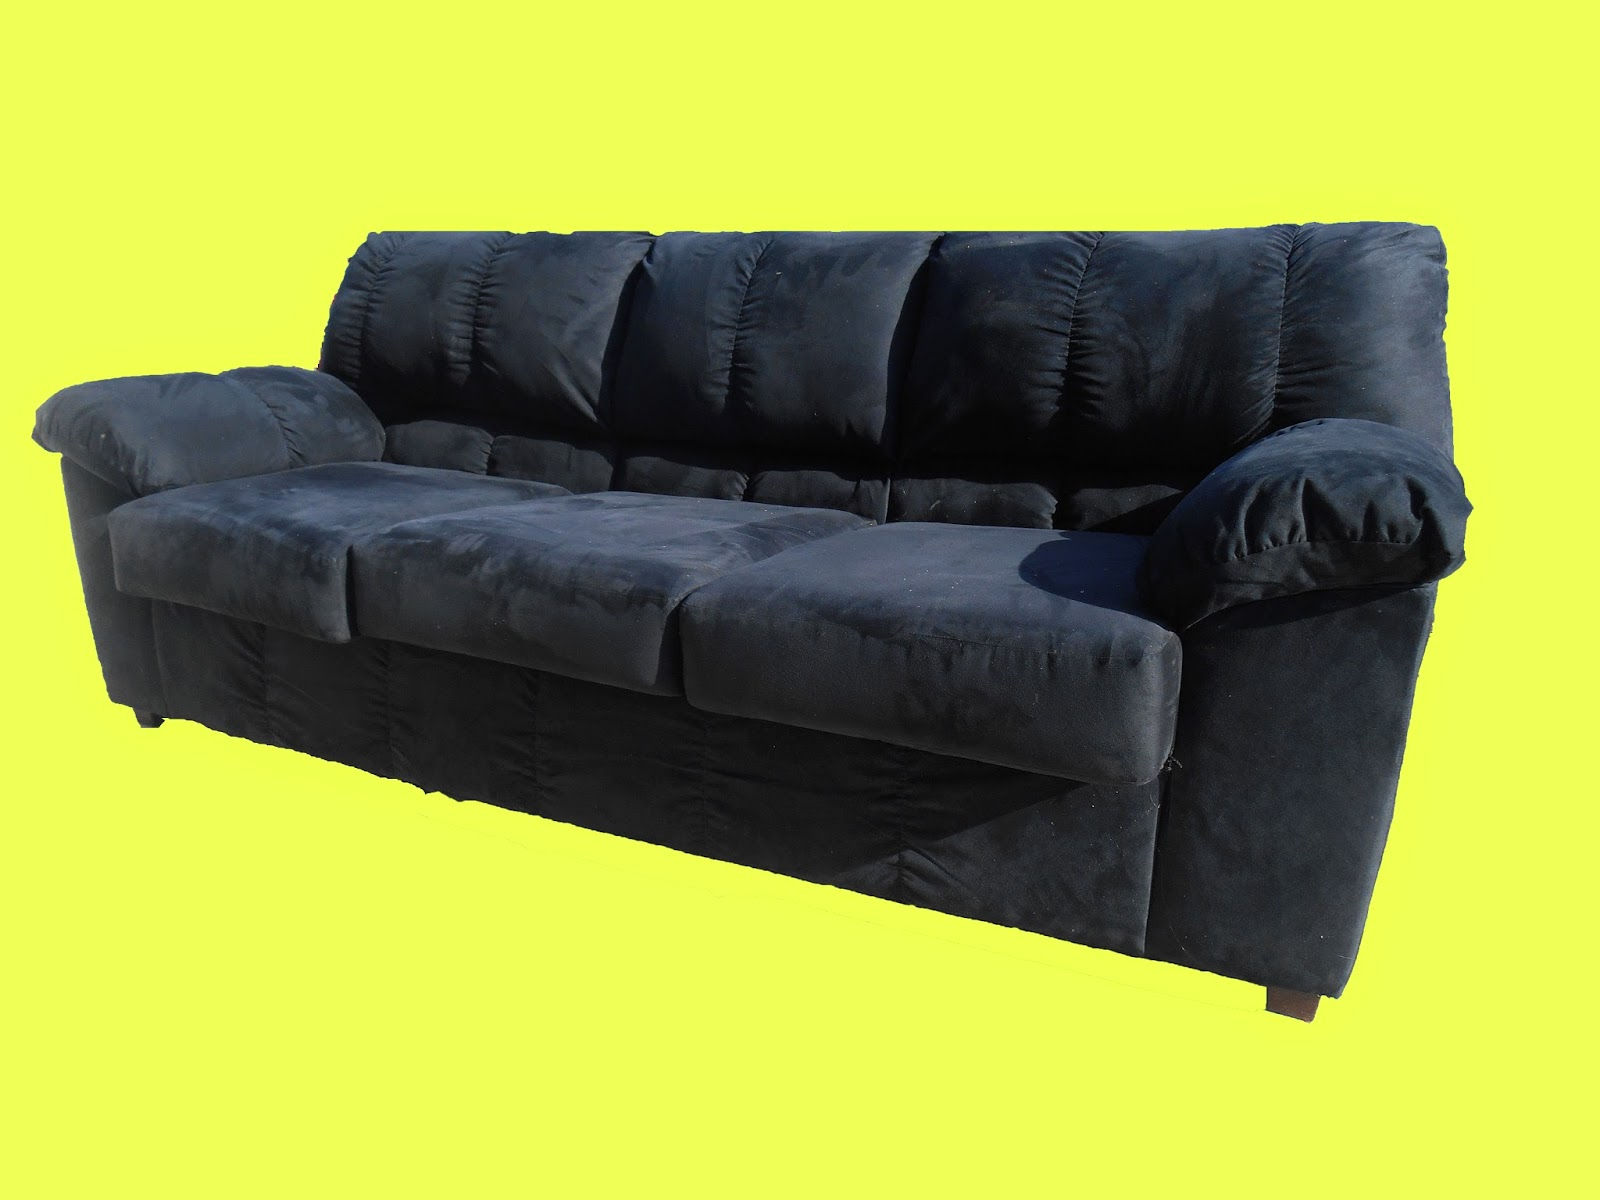 Uhuru Furniture Collectibles Black Microfiber Sofa Sold